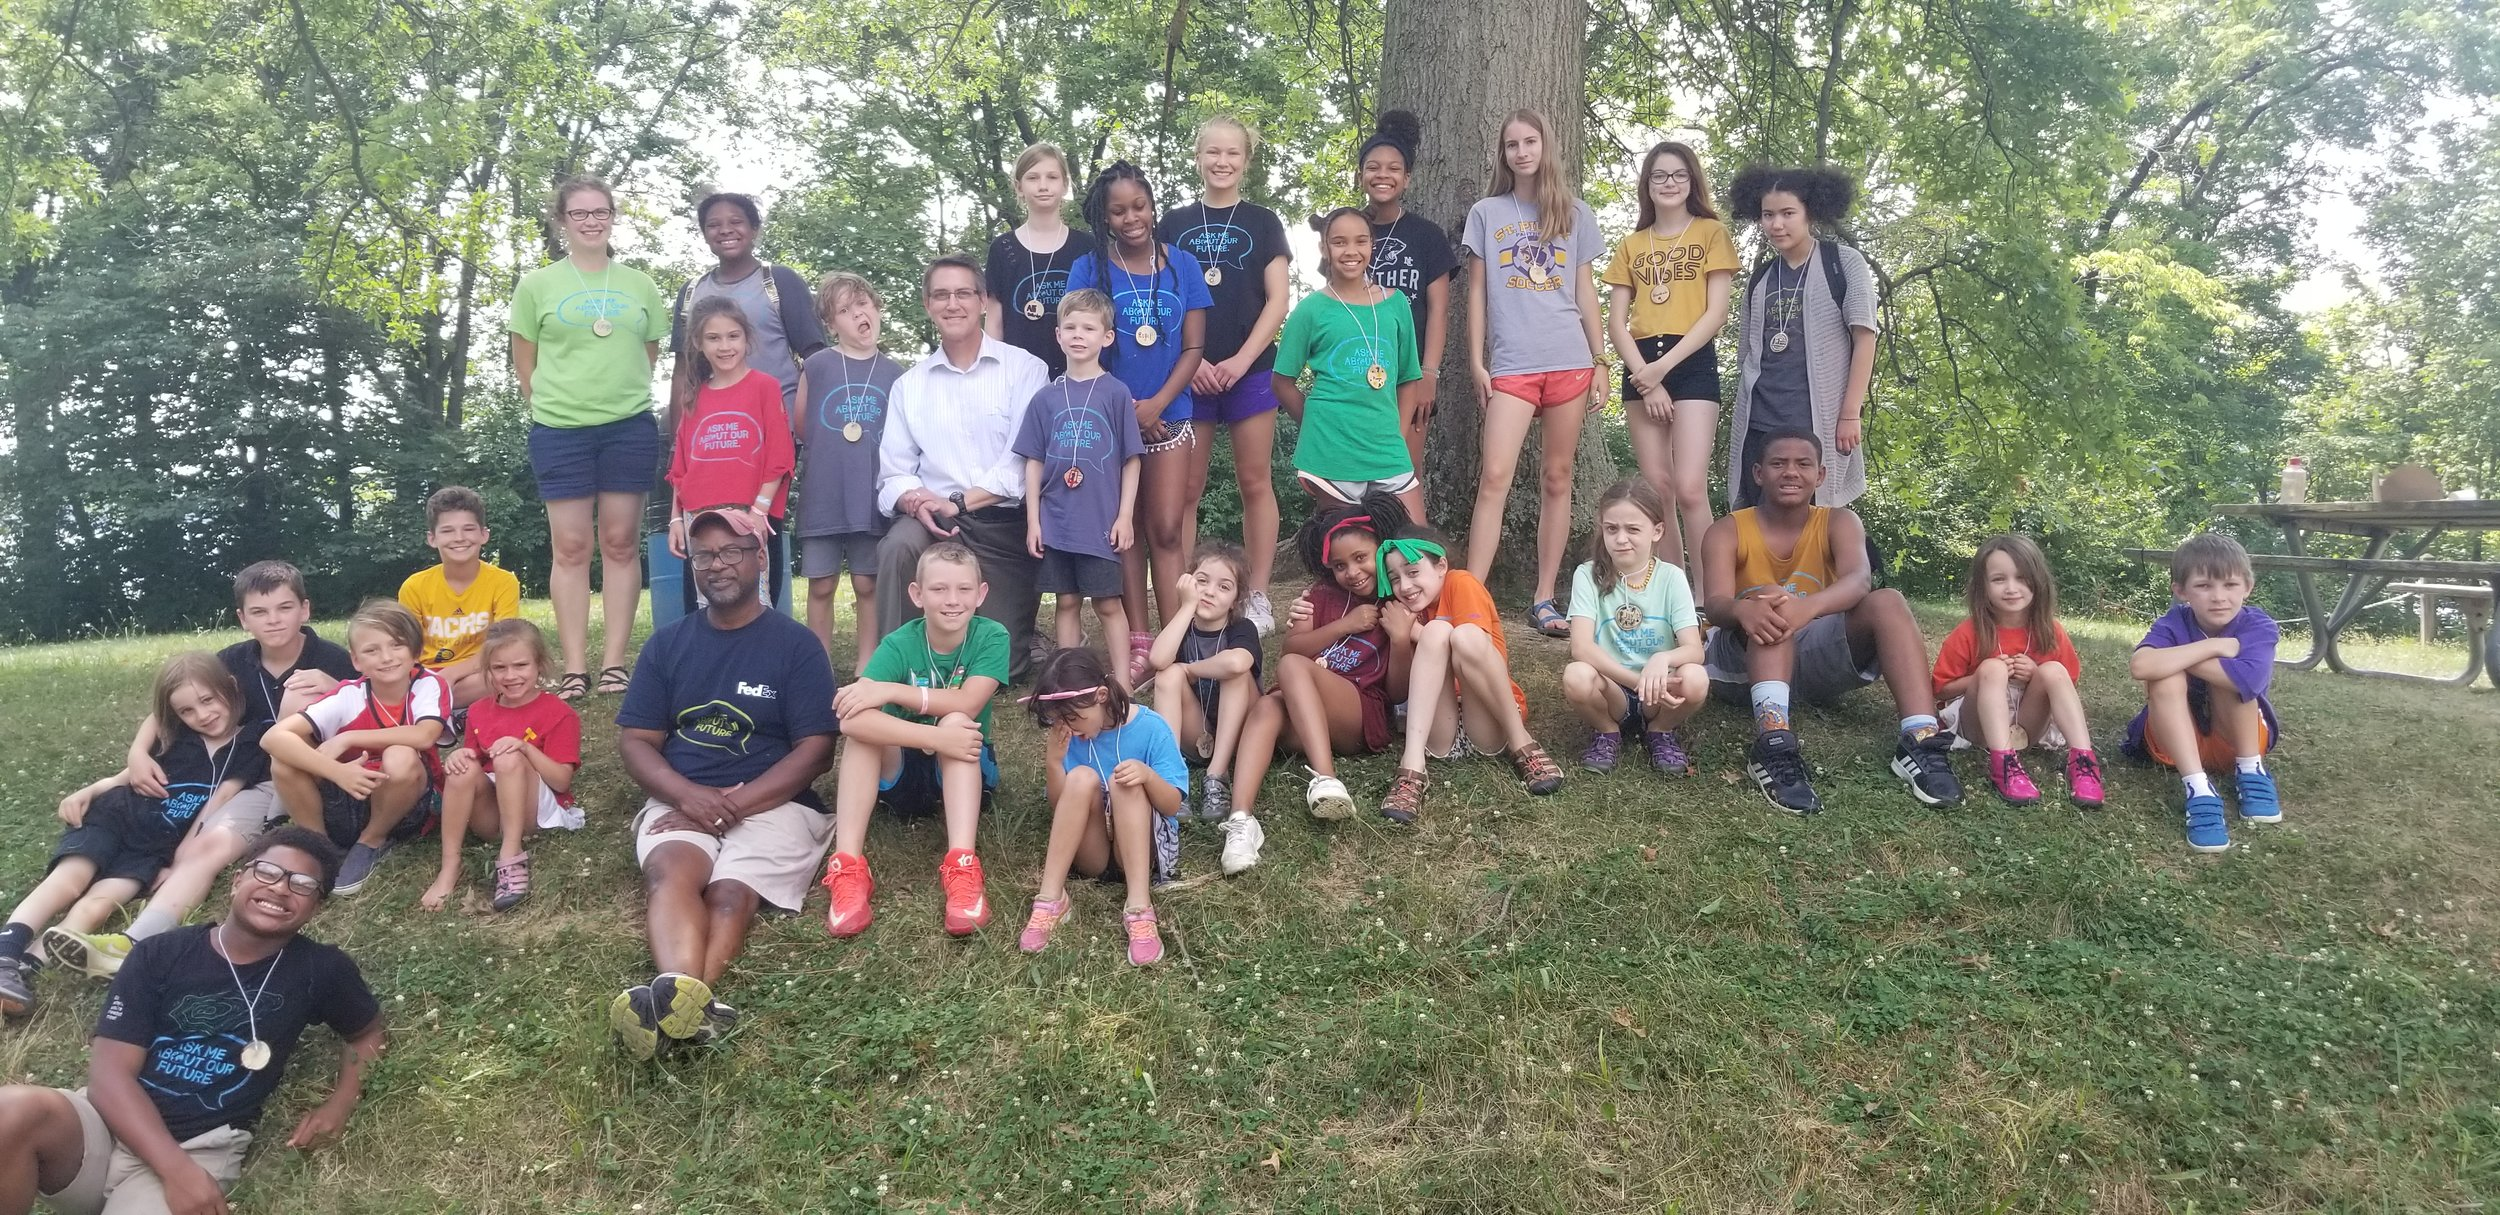 Just left of center, the man in the white shirt is Eric Halverson, from Kroger. We invited Eric in to talk to the campers about how Kroger is phasing out plastic bags altogether. Given the harm plastic bags do to the environment, we were grateful to have him explain how a corporation is becoming a better steward.